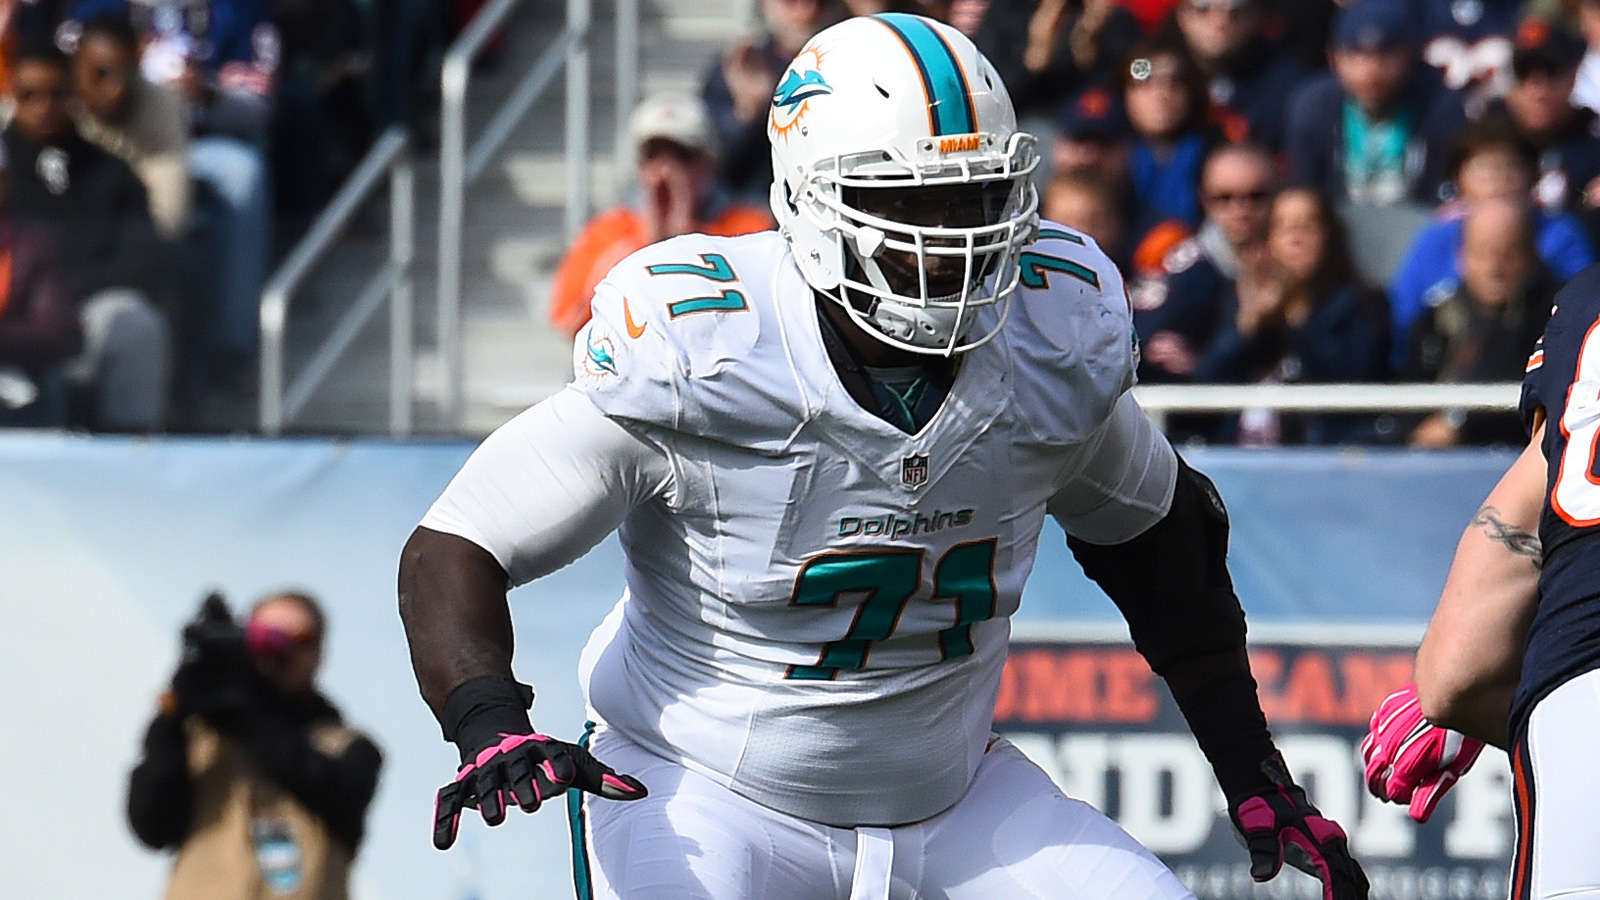 Miami Dolphins to release LT Branden Albert, source says